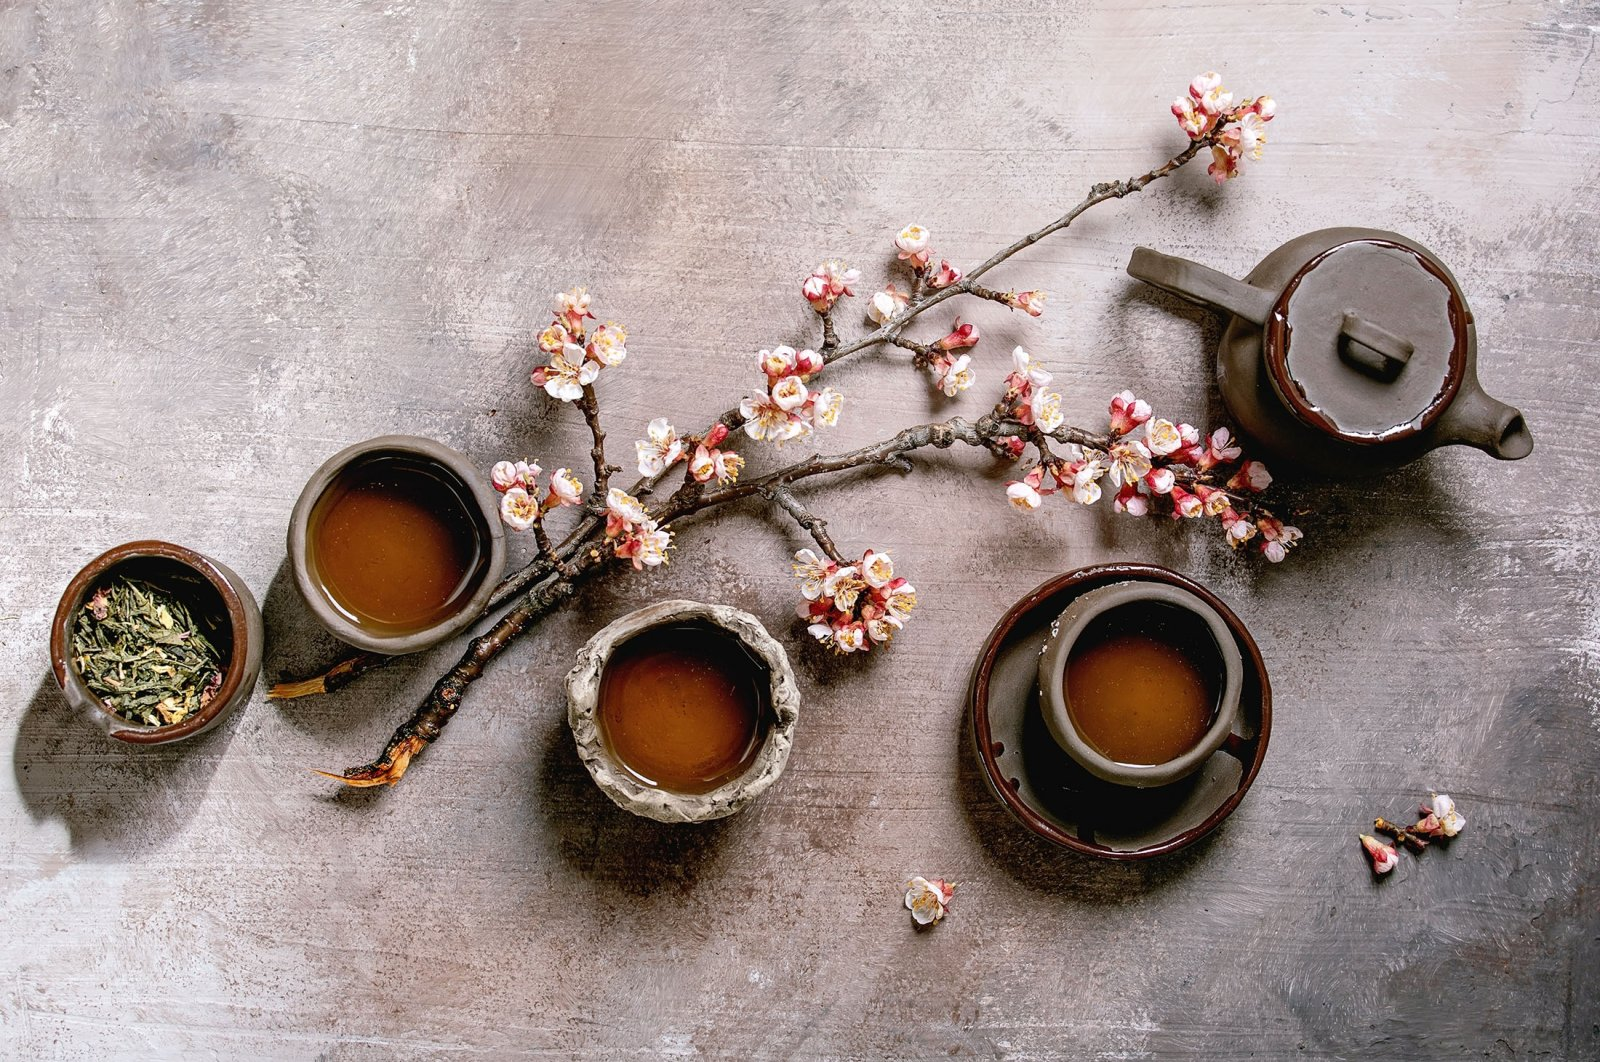 The Japanese have many principles that revolve around decluttering, ridding life of stress and embracing simplicity. (Shutterstock Photo)